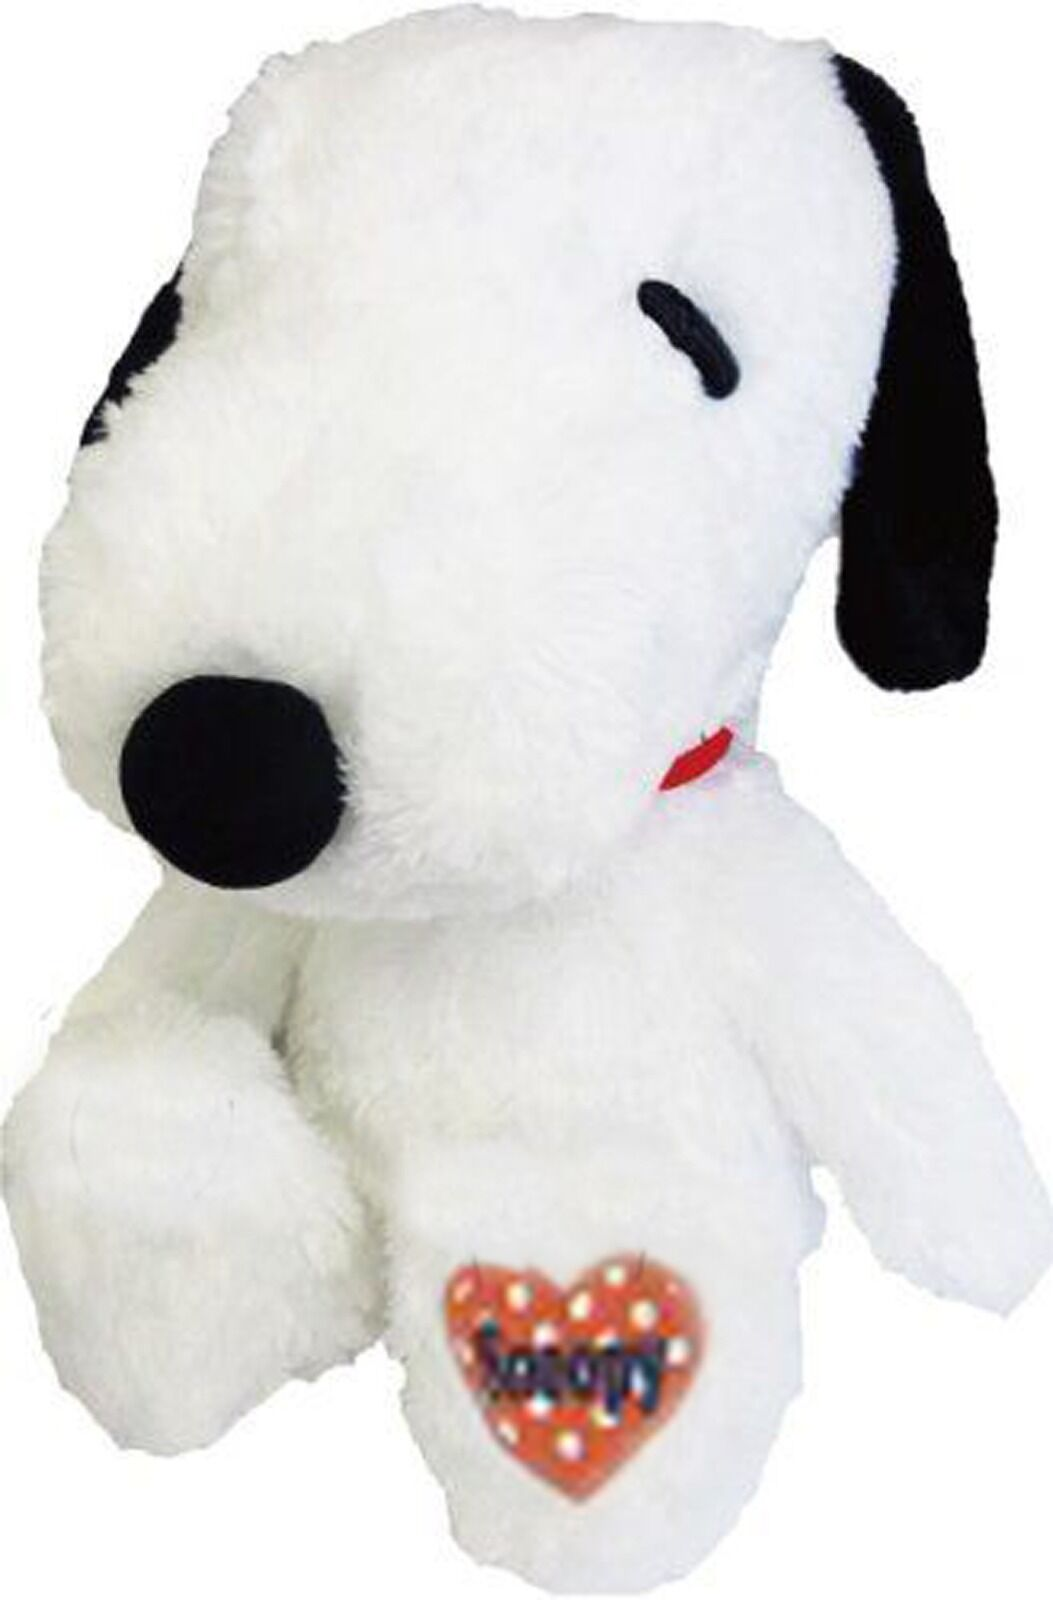 SNOOPY PLUSH - LARGE - JAPAN IMPORT - STUFFED ANIMAL DOLL - NEW